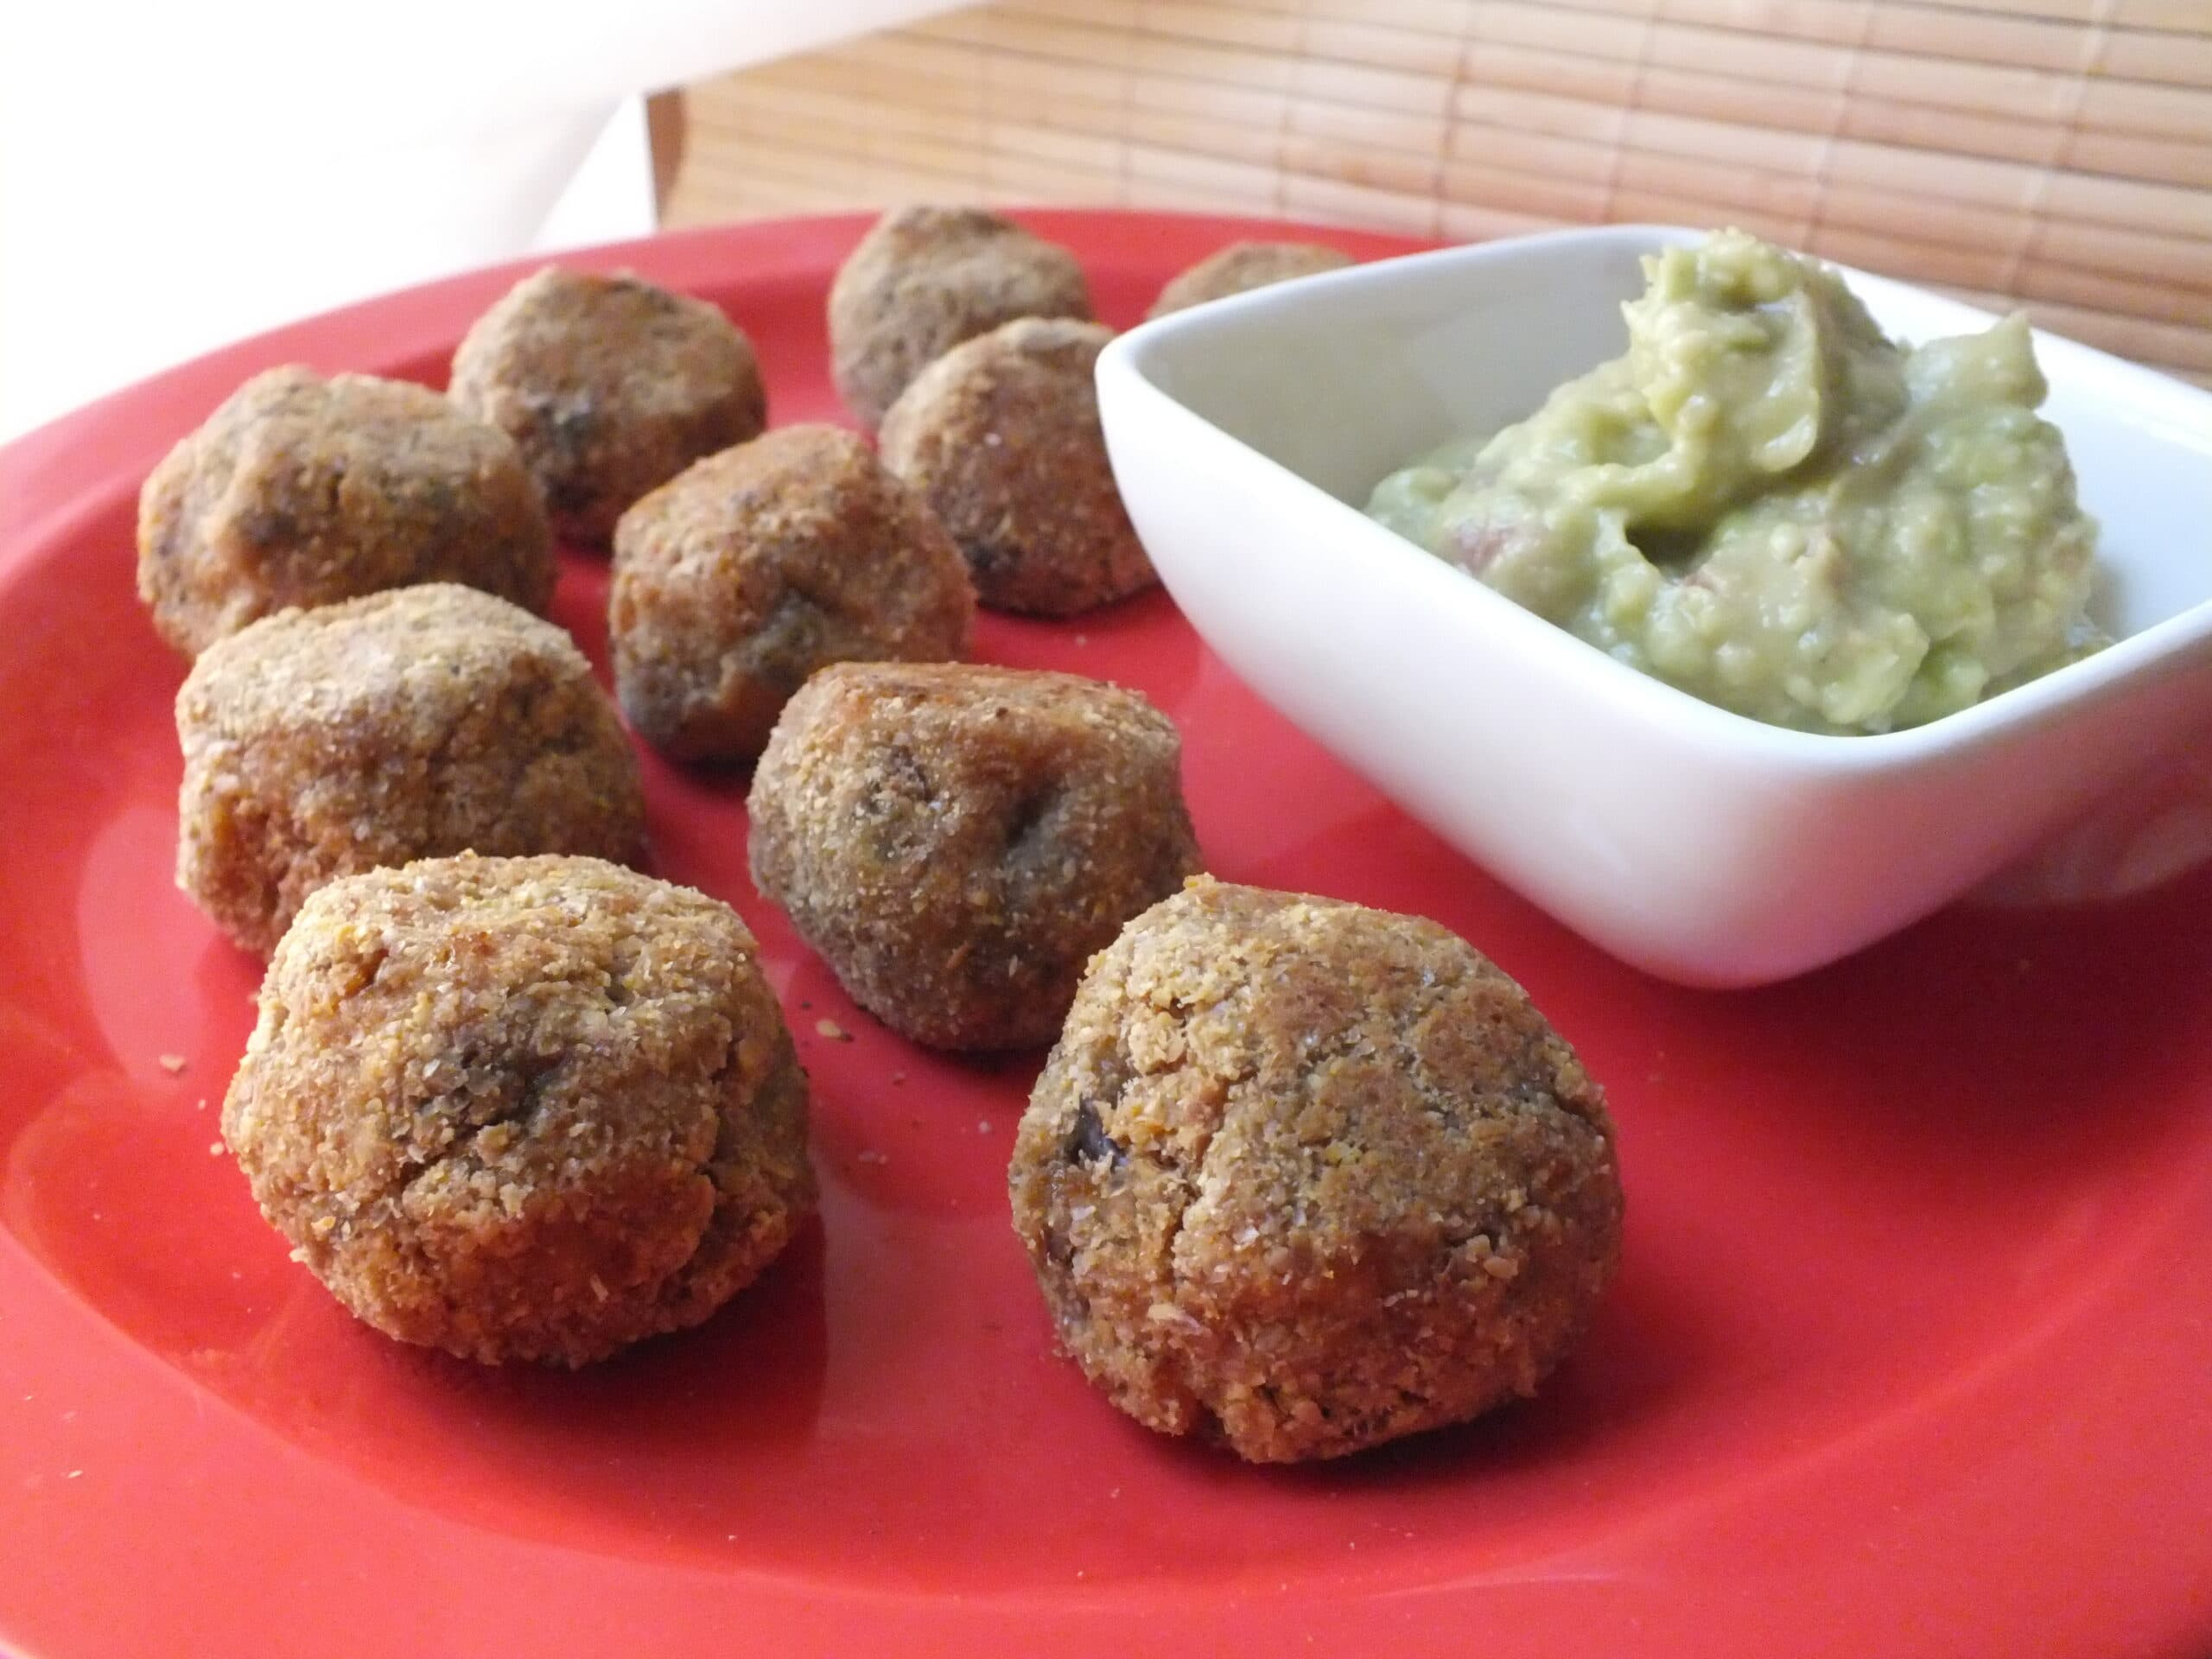 Sweet Potato Bites on Plate with Dip